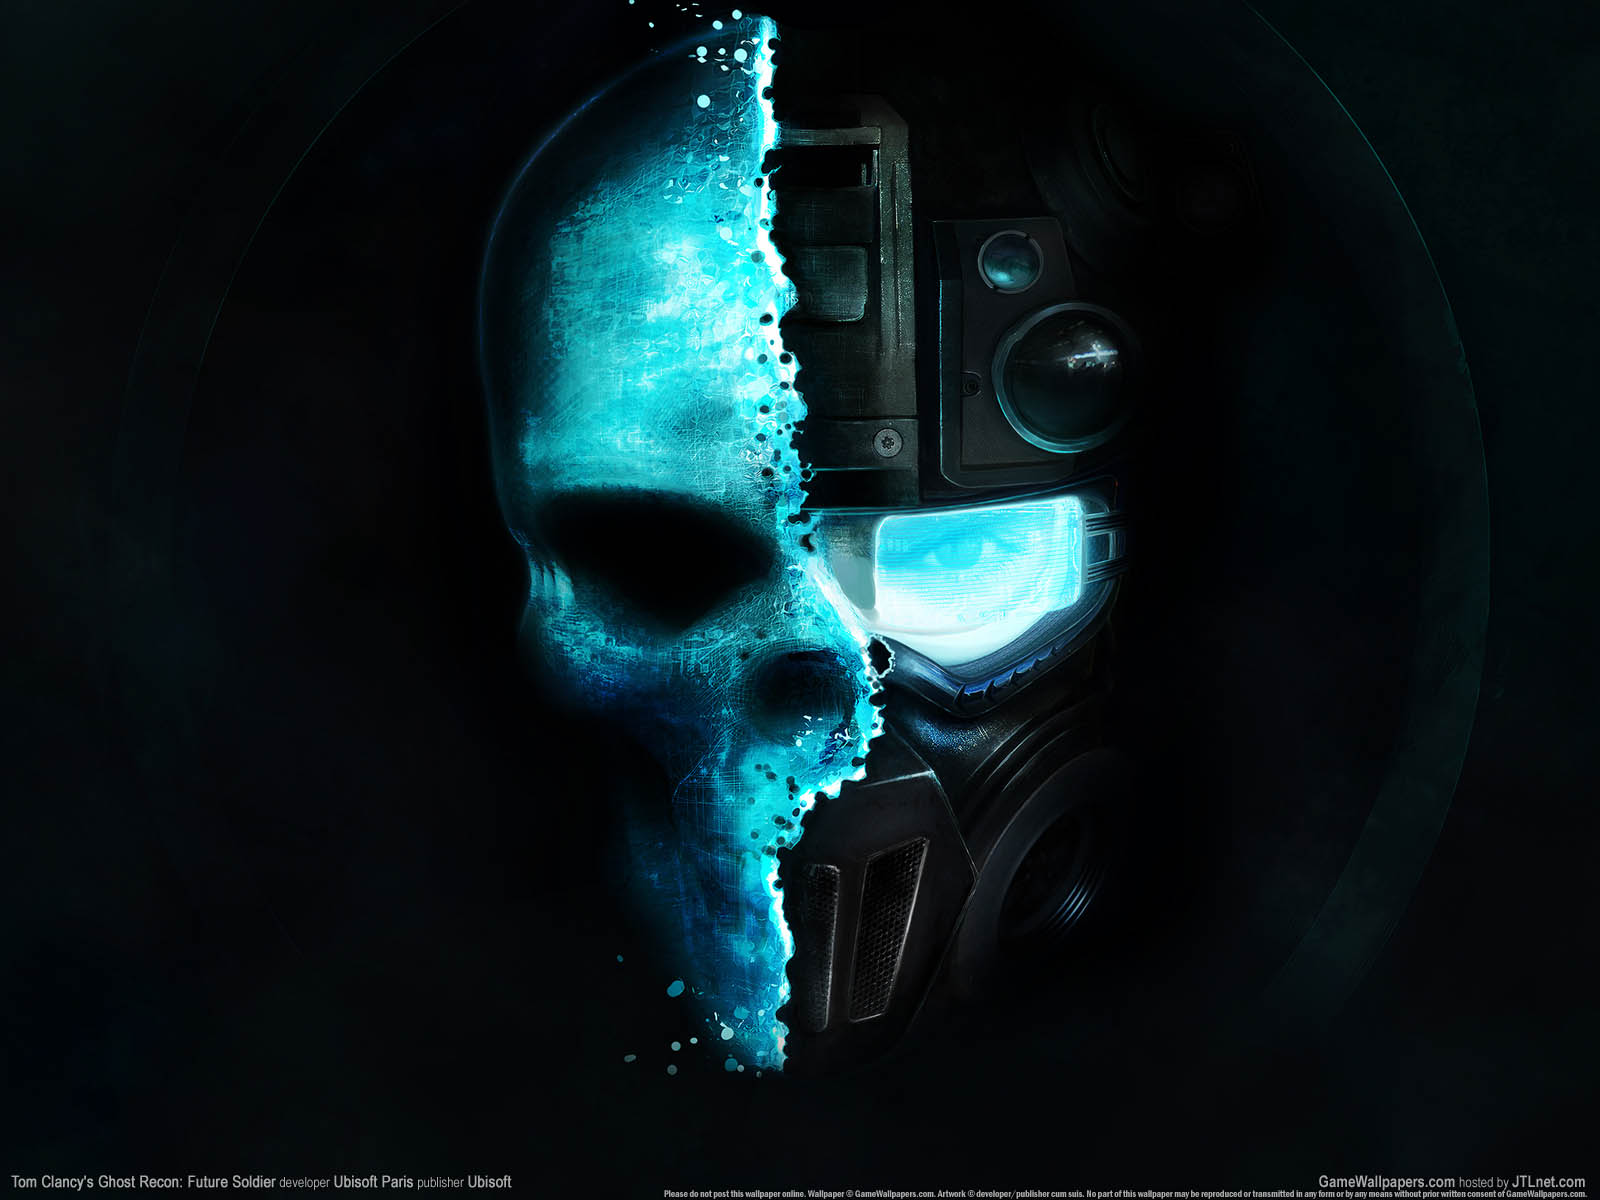 Tom Clancy's Ghost Recon: Future Soldierνmmer=01 Hintergrundbild  1600x1200